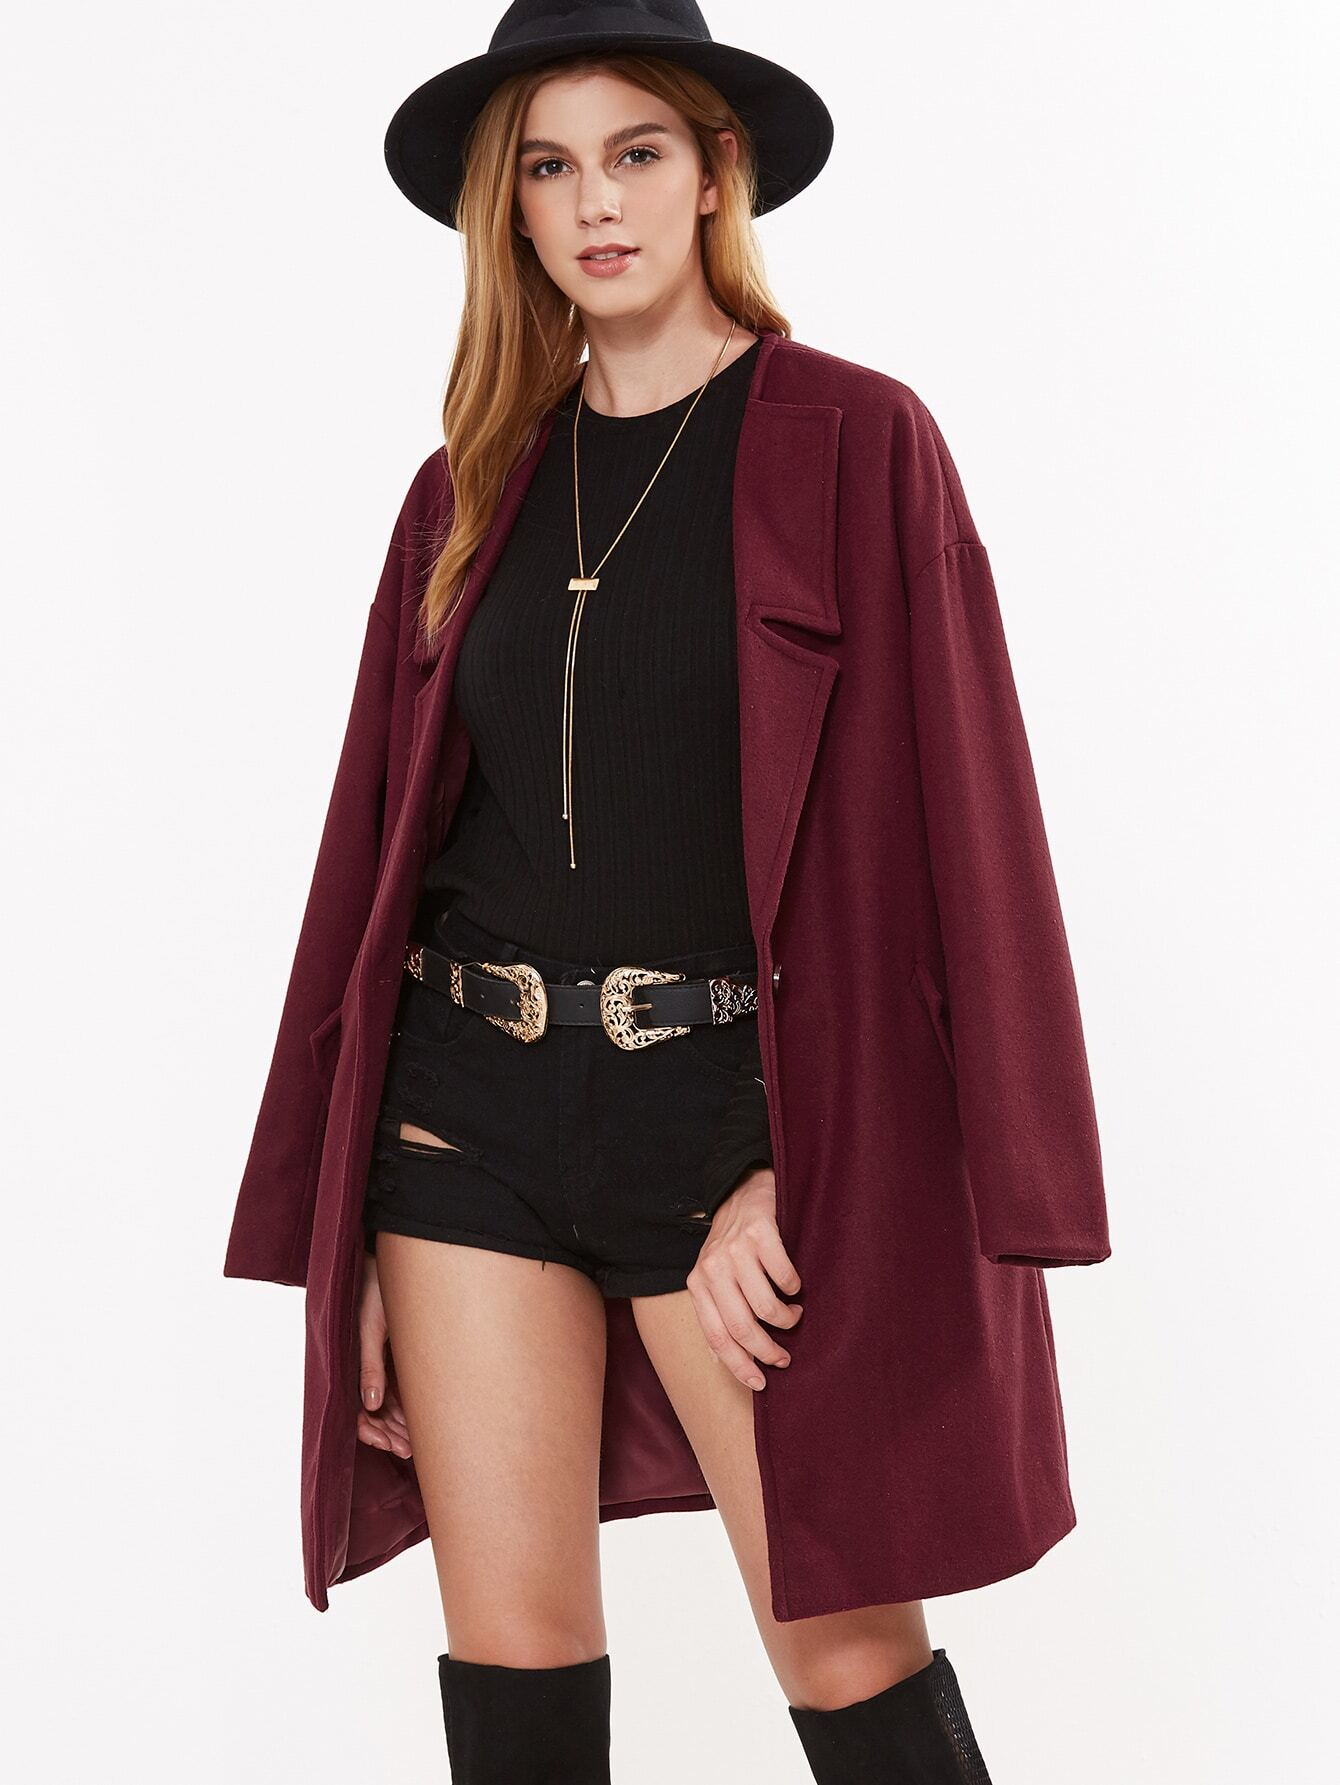 Burgundy Notch Collar One Button Front CoatBurgundy Notch Collar One Button Front Coat<br><br>color: Burgundy<br>size: L,M,S,XS